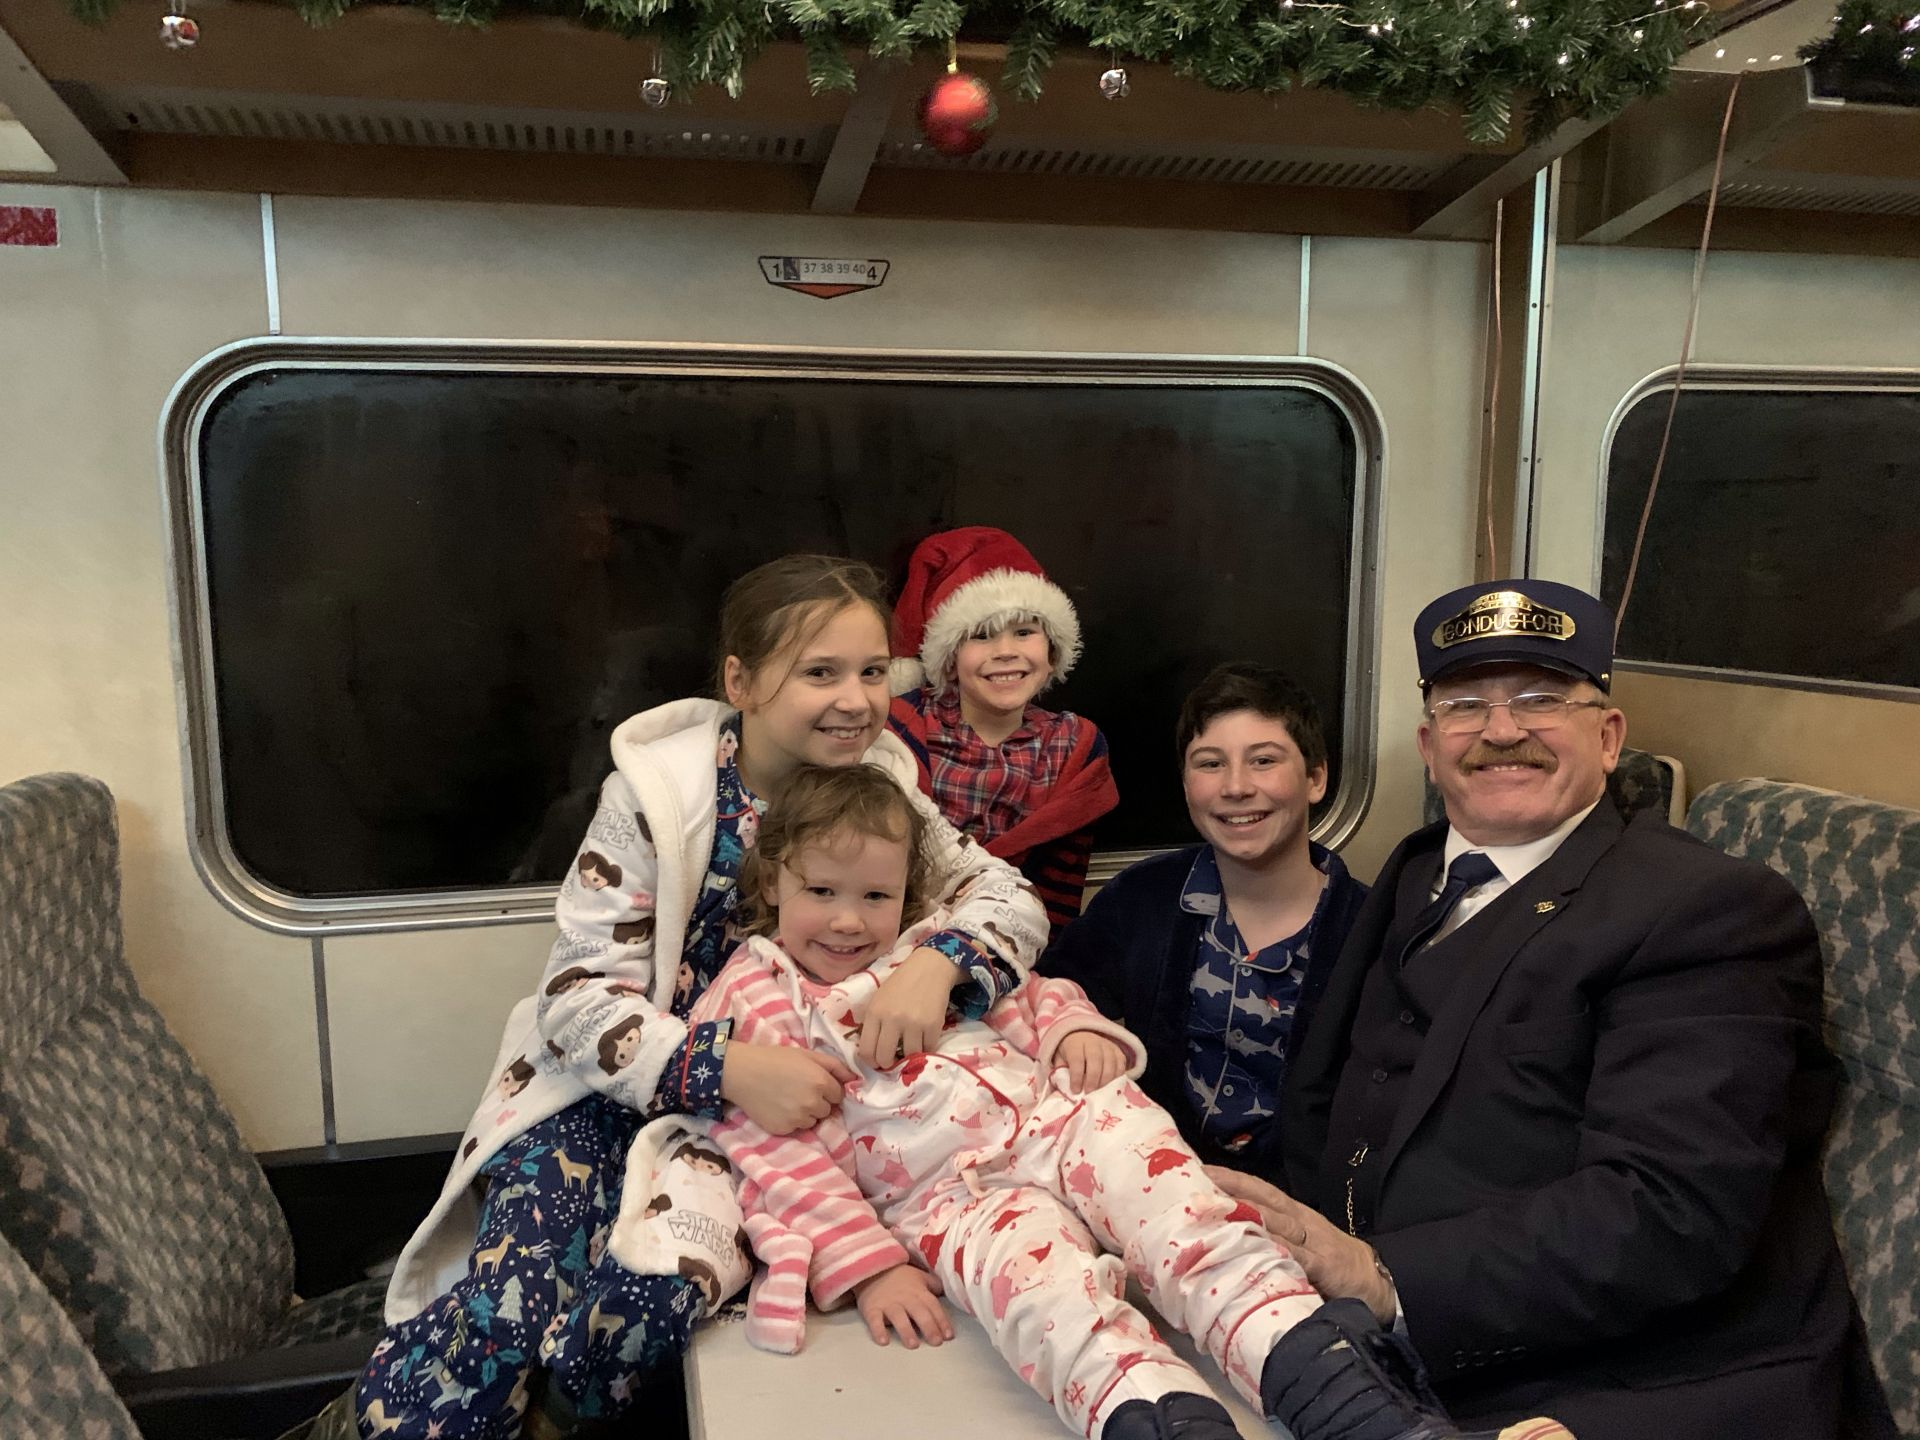 four children posing for a picture with a train conductor